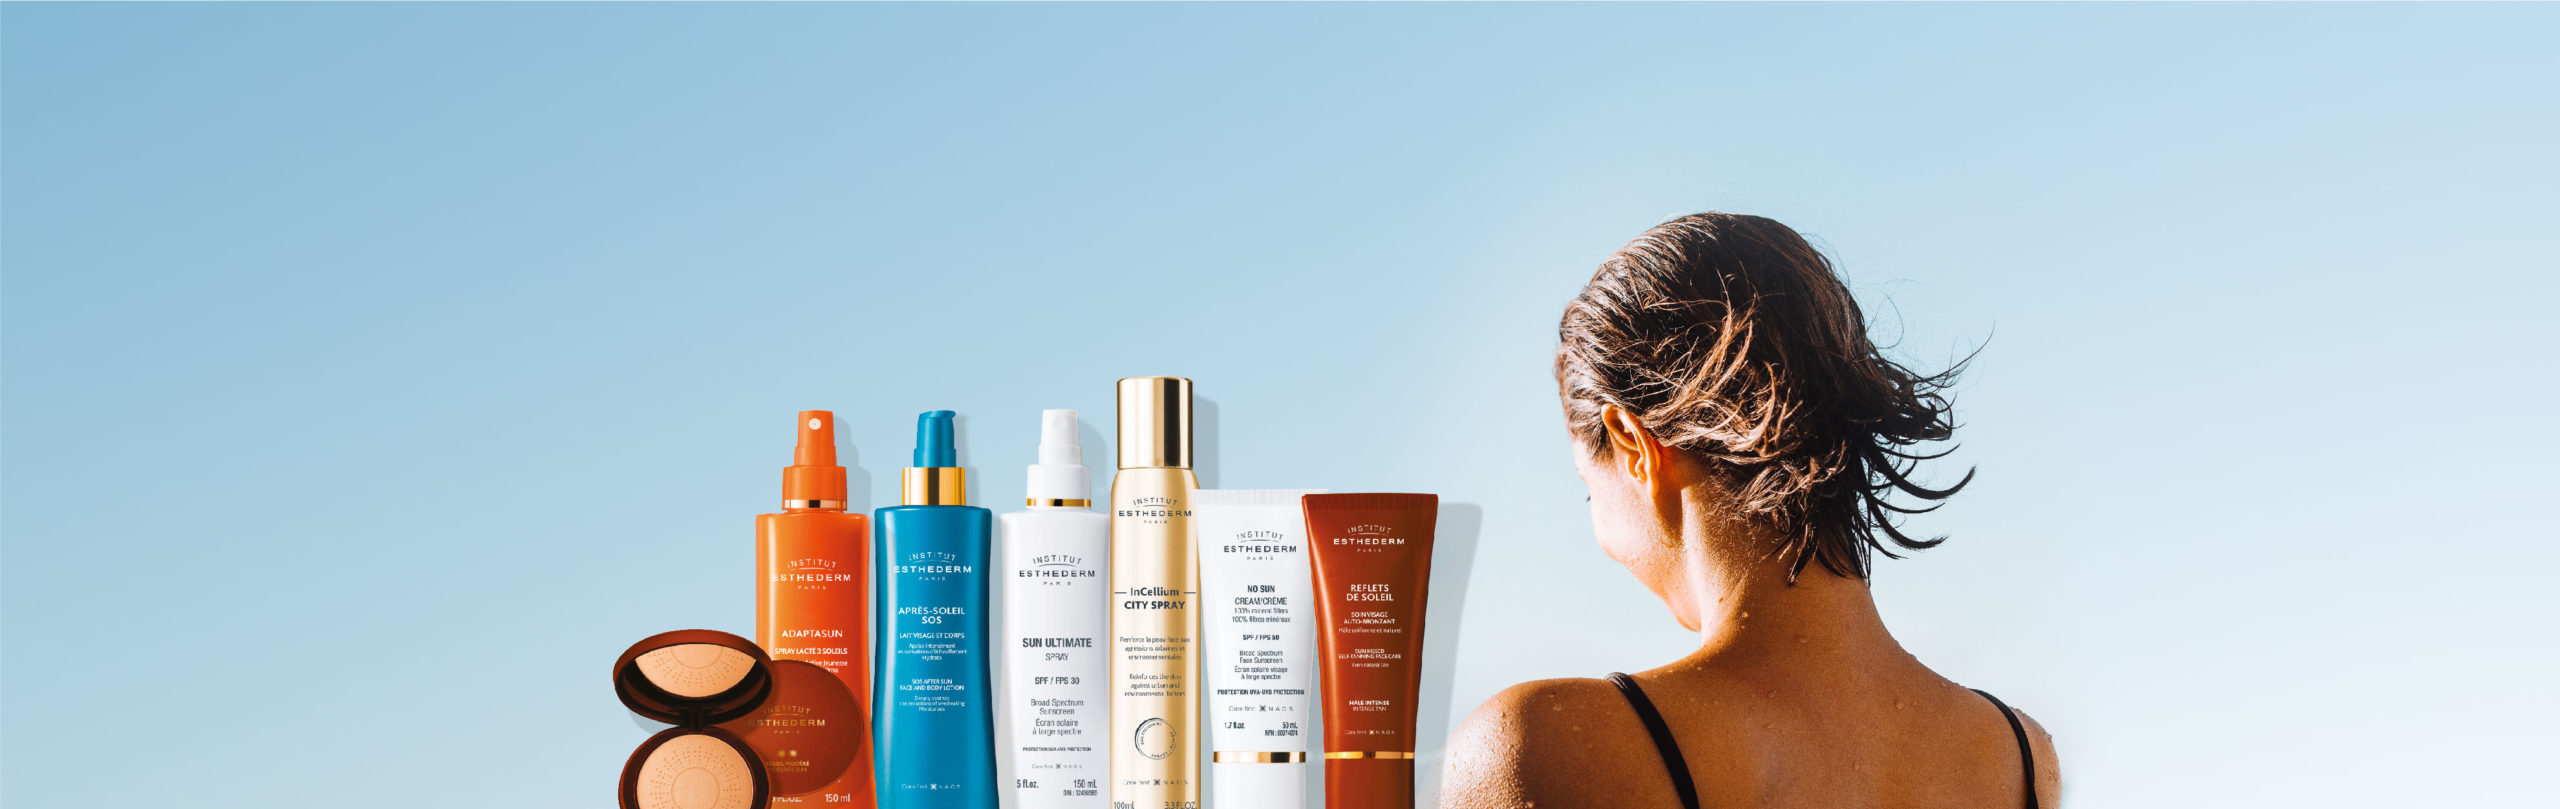 Esthederm product photo, suncare, UVA UVB protection, hydrating anti-aging, sunscreen, broad spectrum care, mineral filters